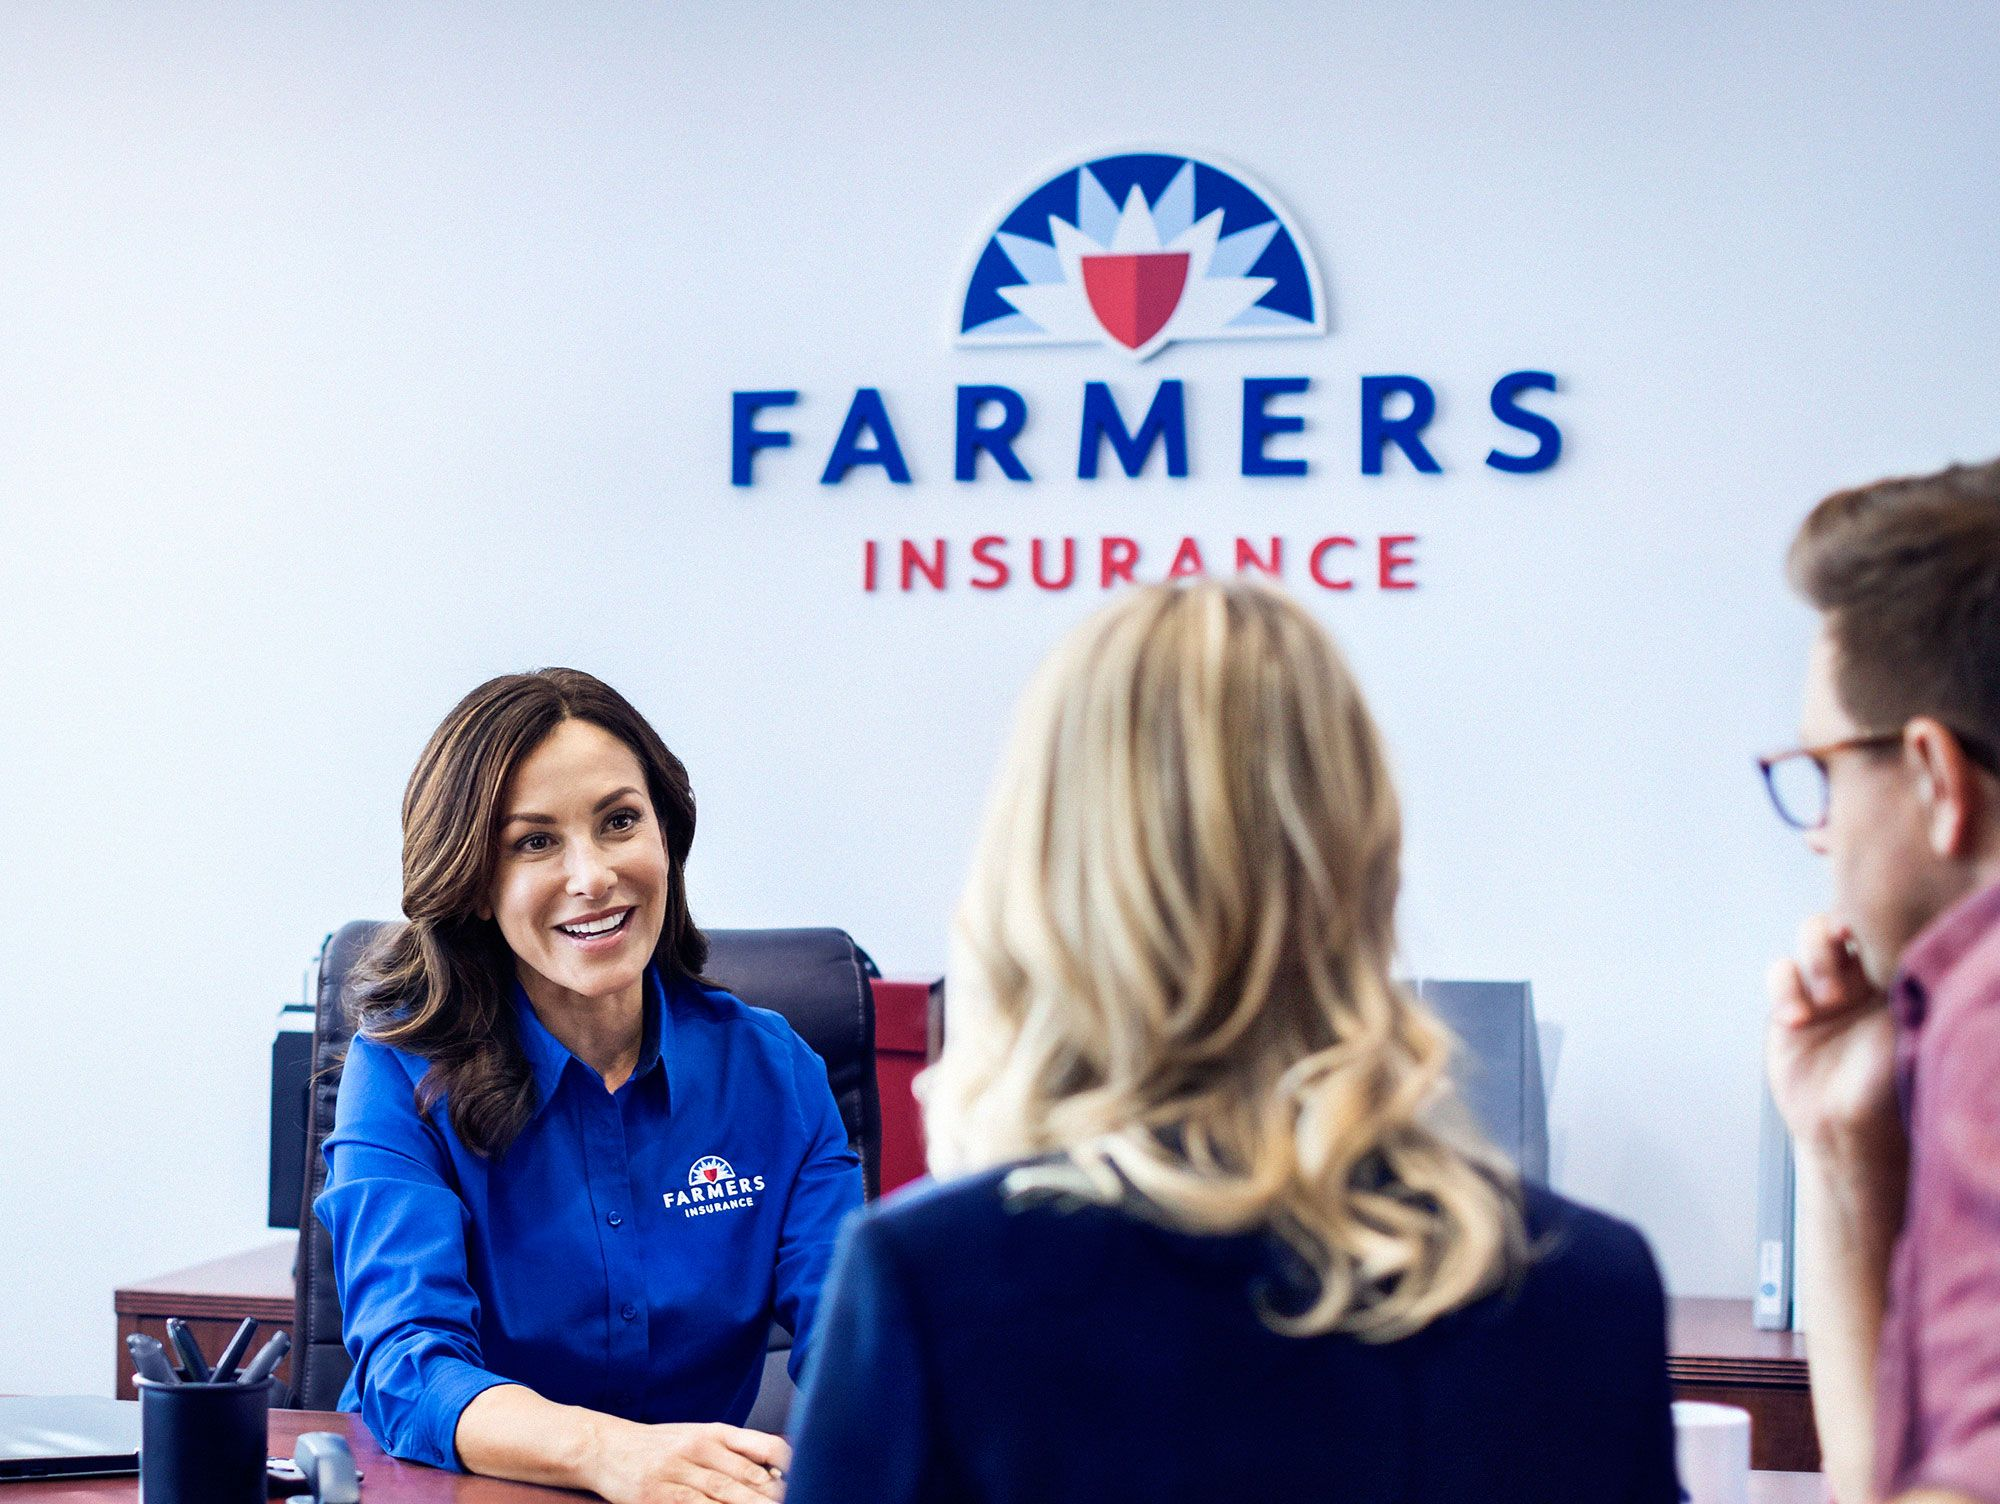 Woman Farmers Insurance Commercial Actress | See More...